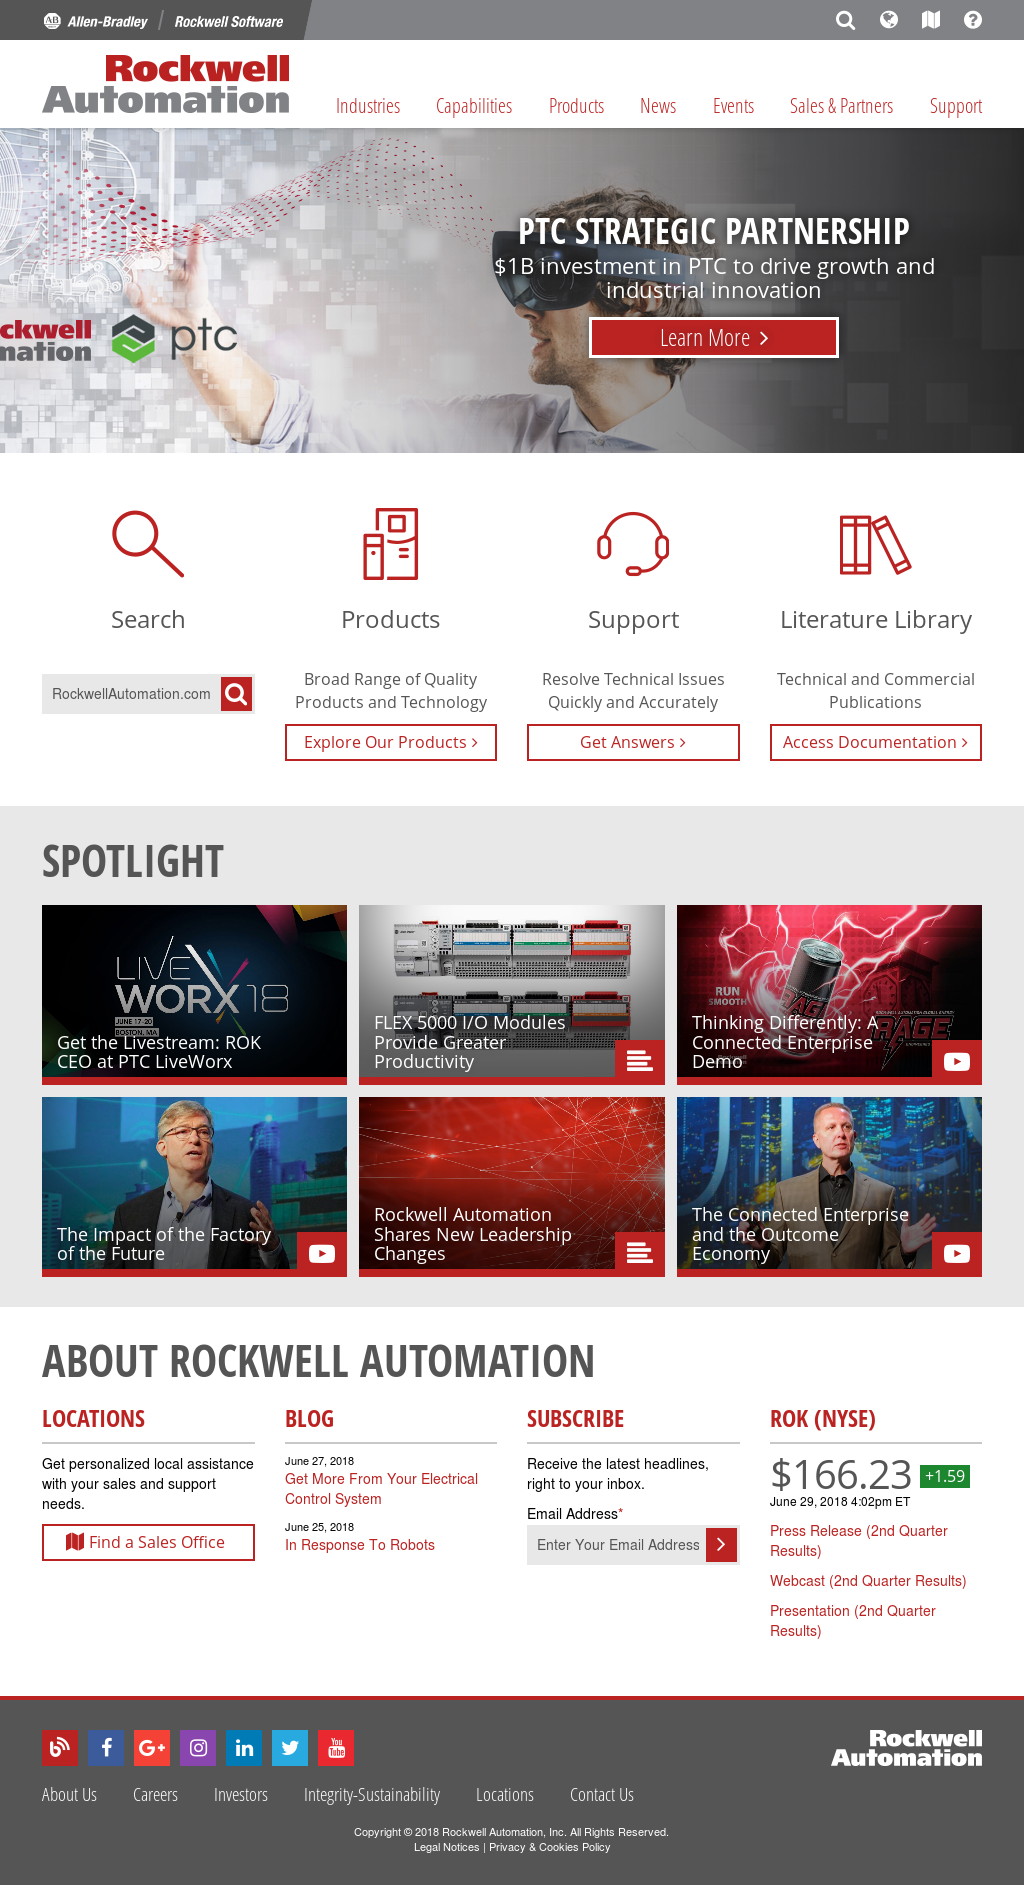 Rockwell Automation Competitors, Revenue and Employees - Owler